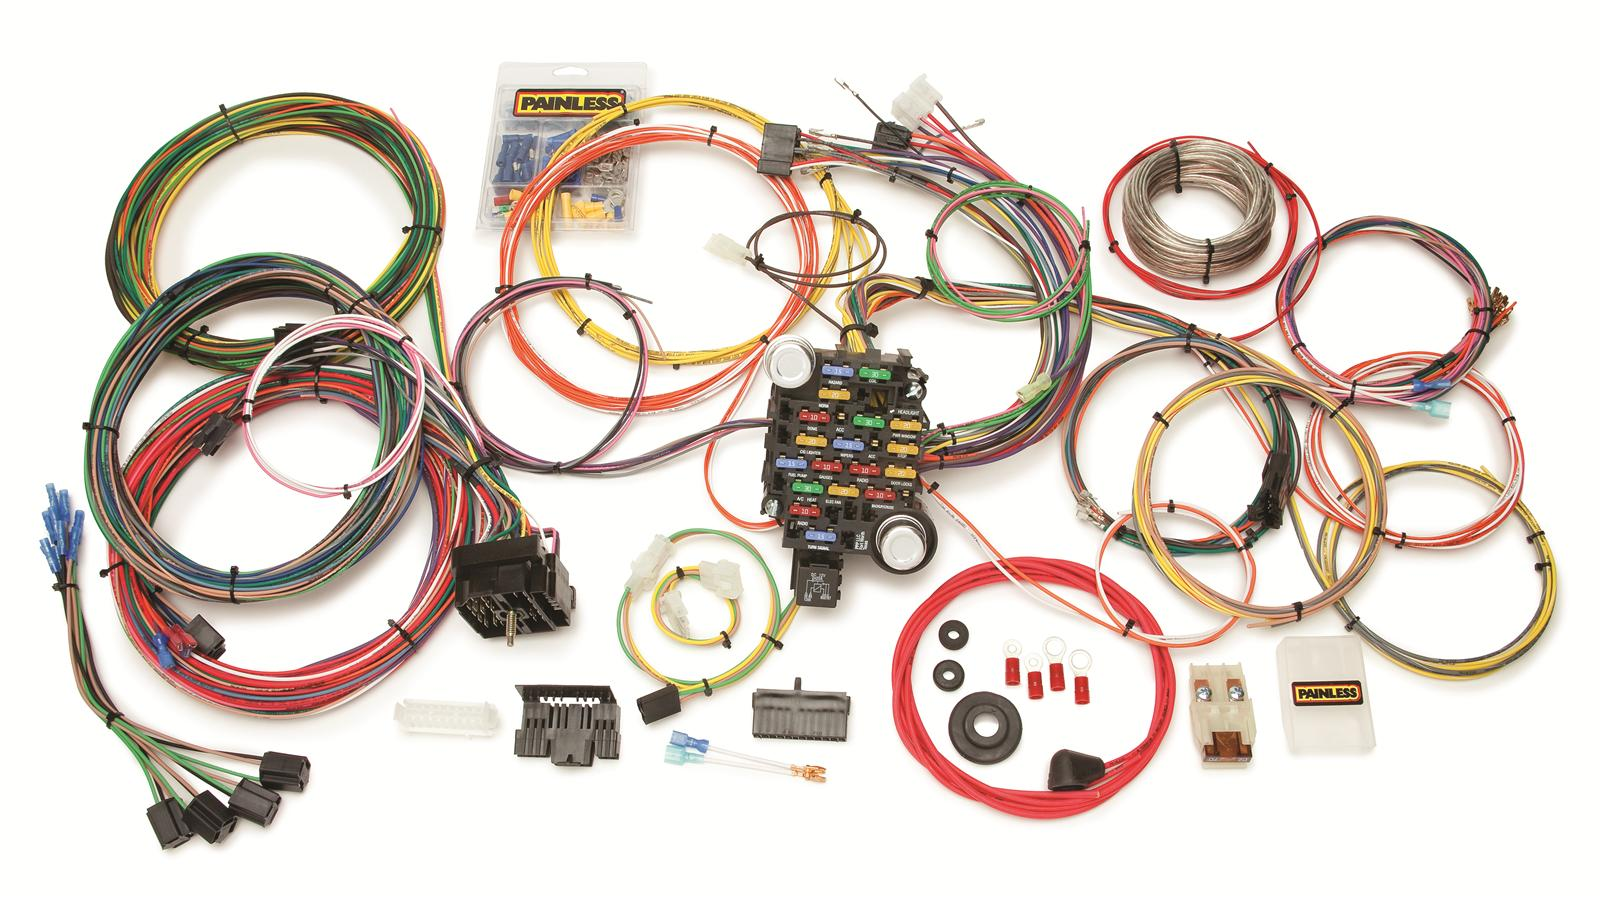 Painless Performance Gmc Chevy Truck Harnesses 10205 Free Shipping 2004 Chevrolet Impala Stereo Wiring Diagram Autos Post On Orders Over 99 At Summit Racing